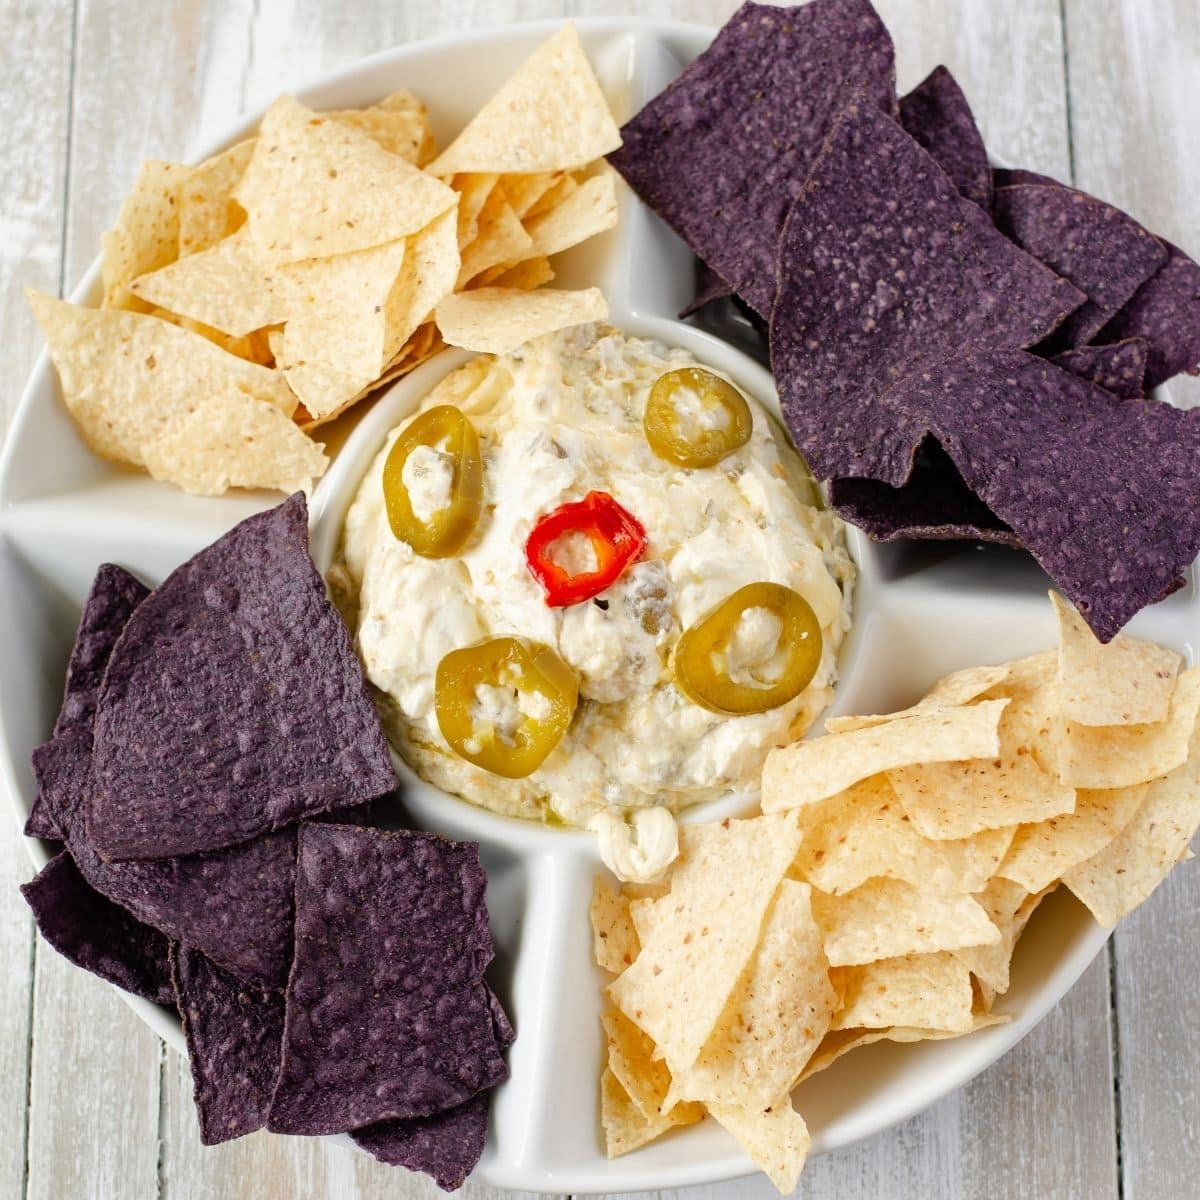 A dip bowl filled with jalapeno popper dip and chips.